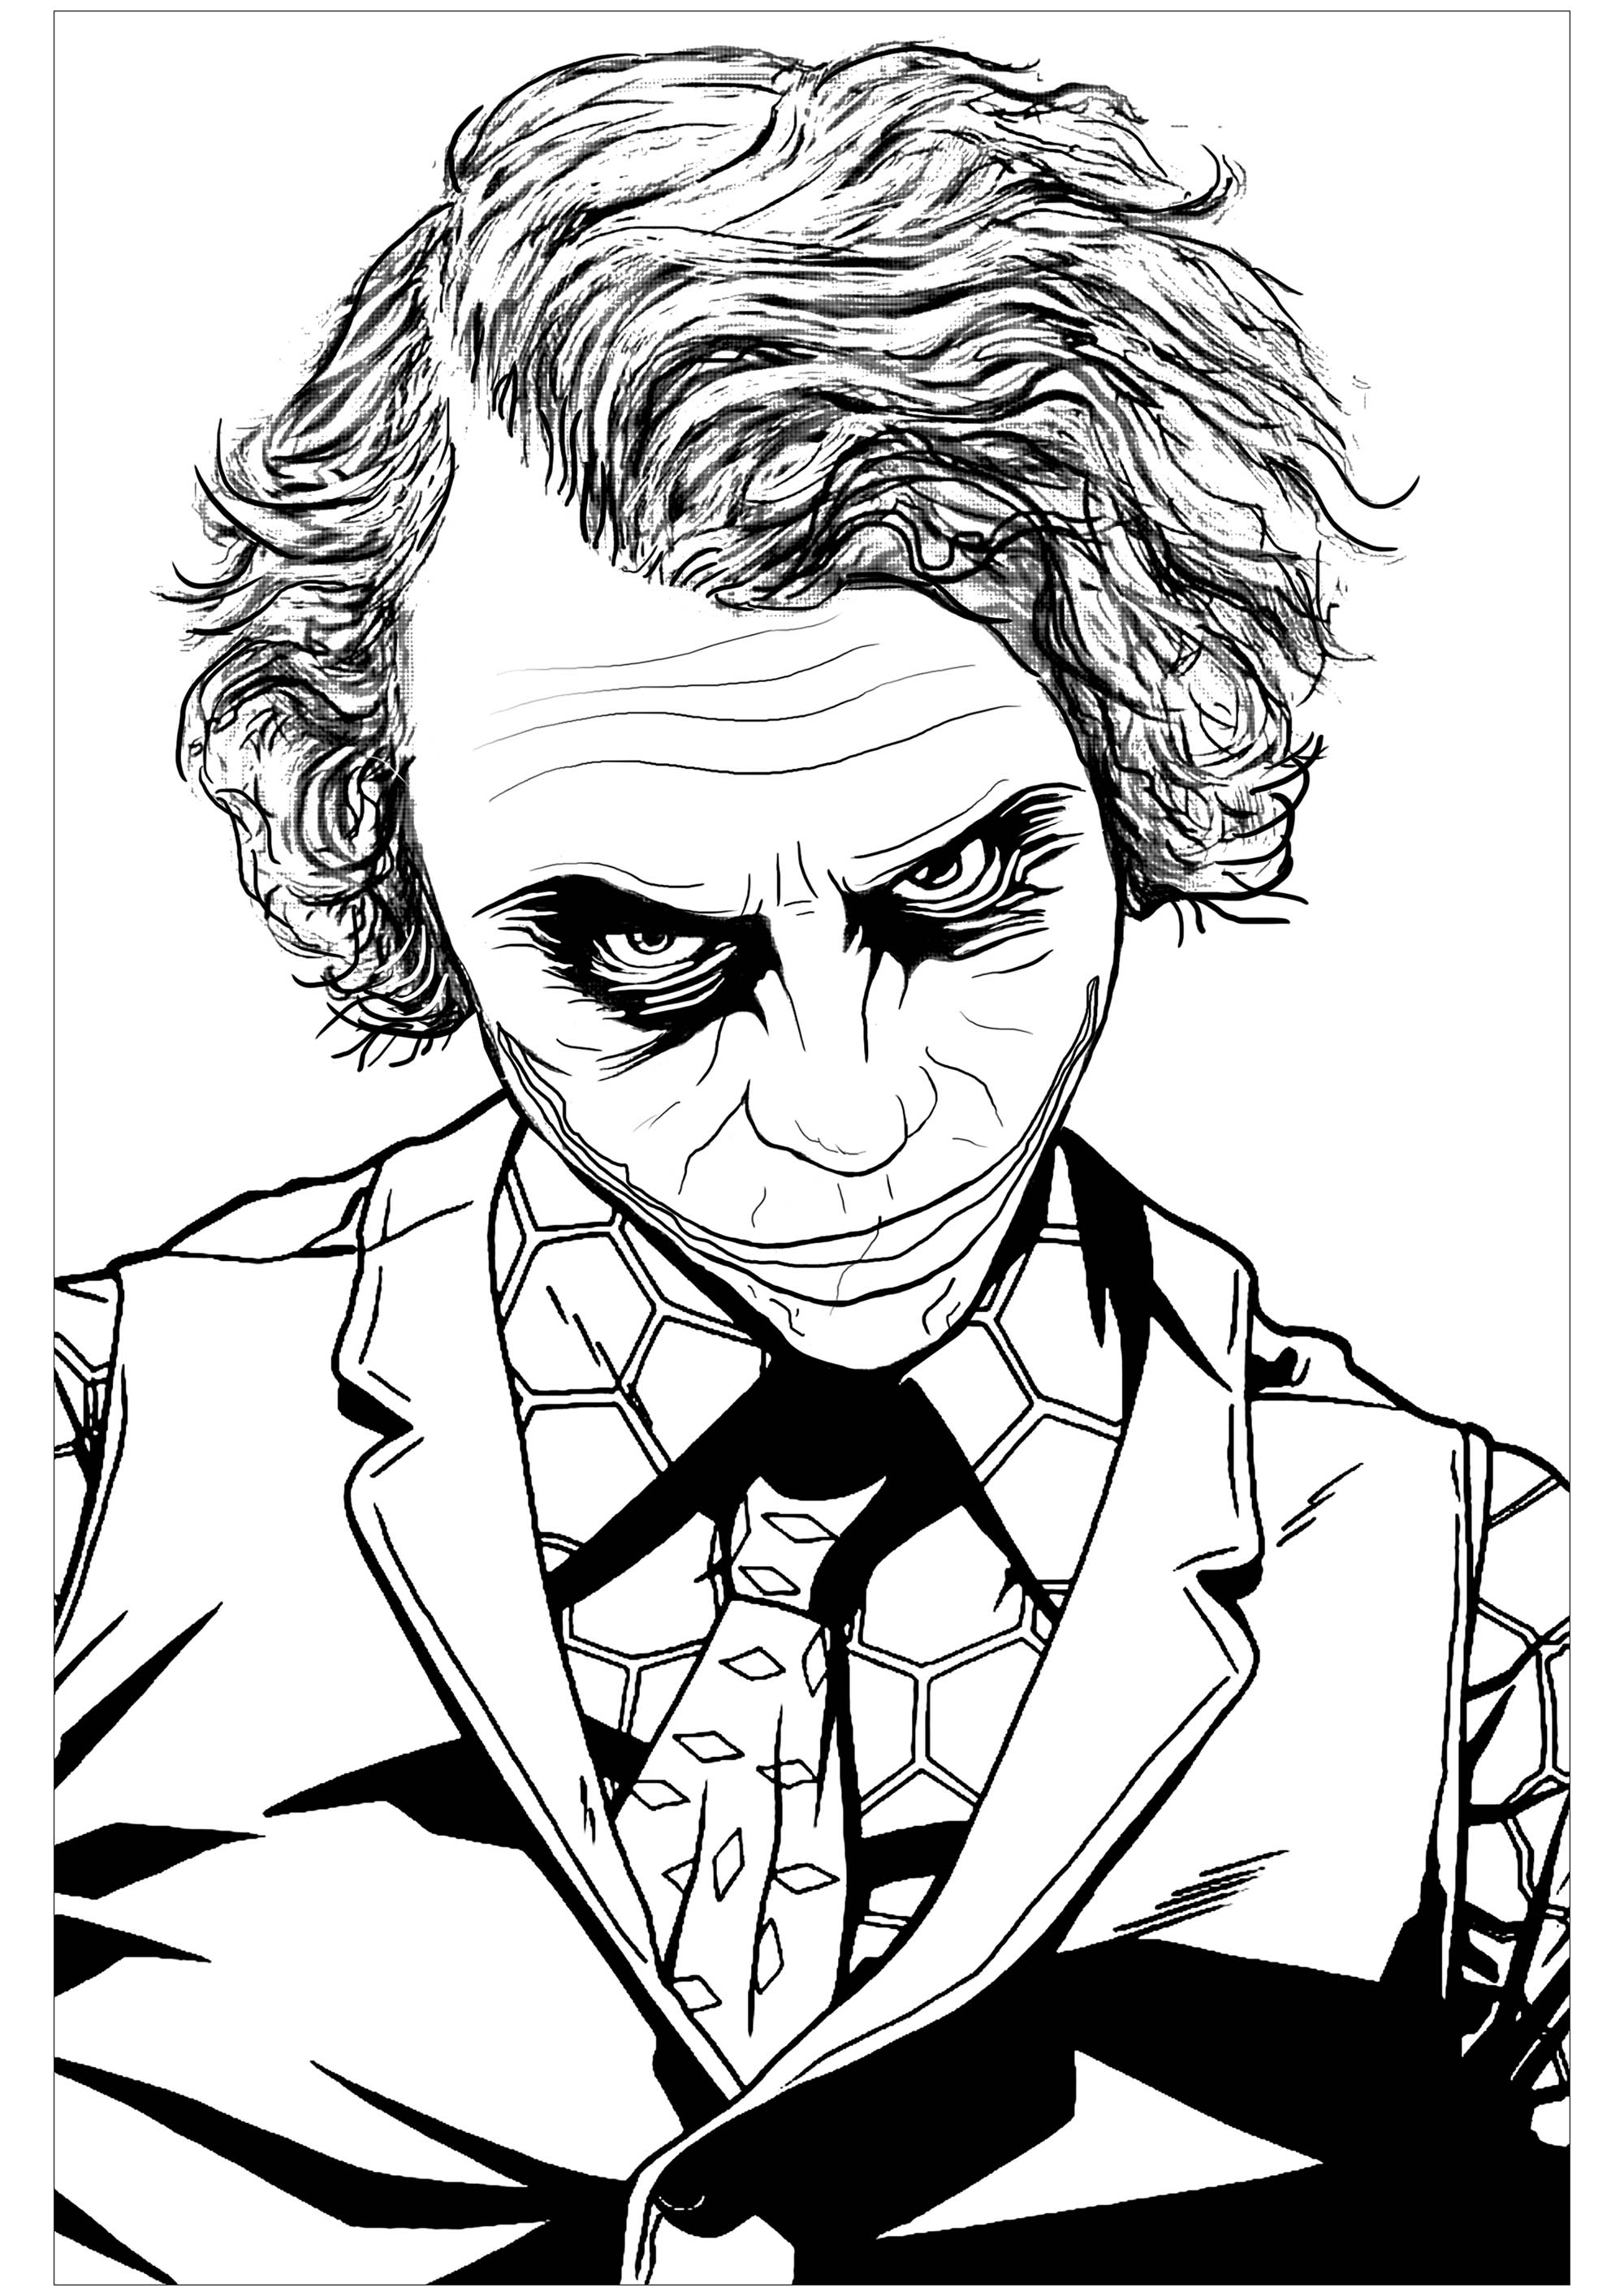 Coloriage Gratuit Joker.The Joker Heath Ledger Films Celebres Coloriages Difficiles Pour